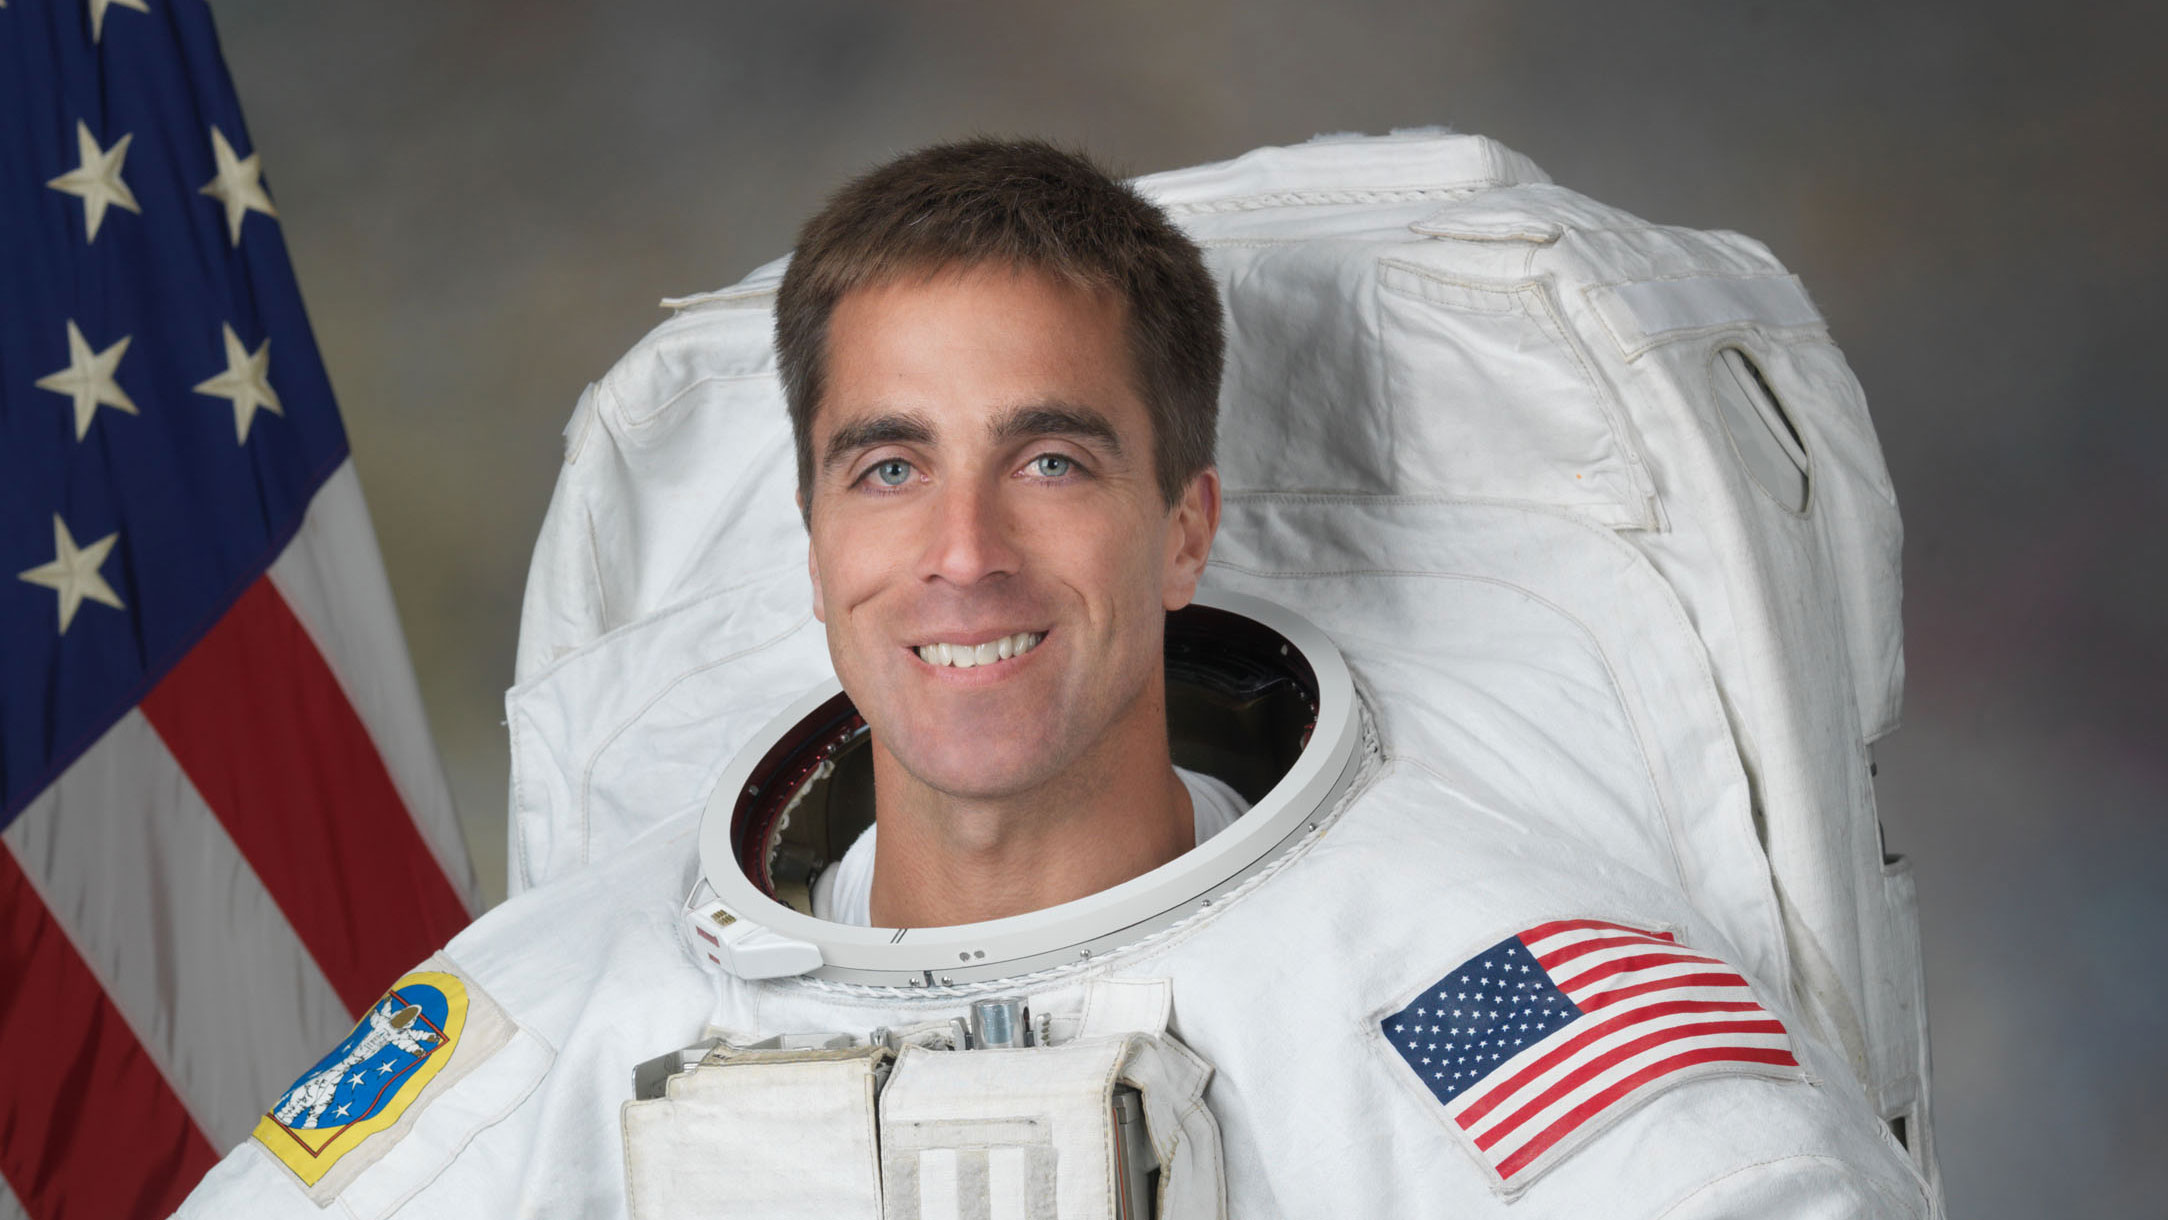 NASA Astronaut Chris Cassidy New Chief of Astronaut Office ...